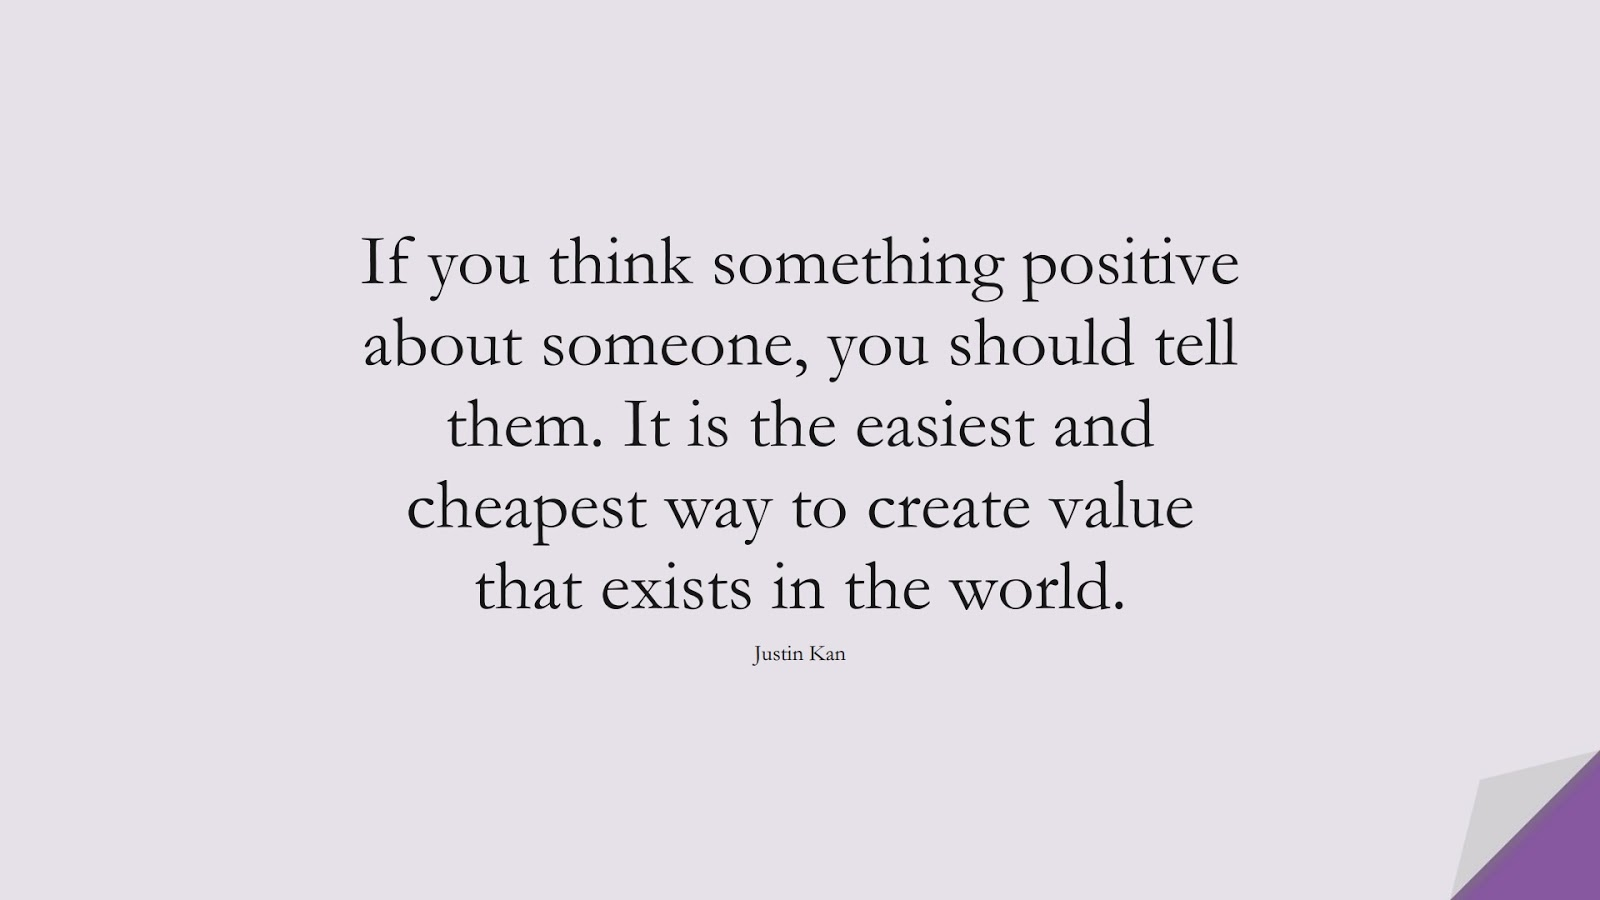 If you think something positive about someone, you should tell them. It is the easiest and cheapest way to create value that exists in the world. (Justin Kan);  #RelationshipQuotes